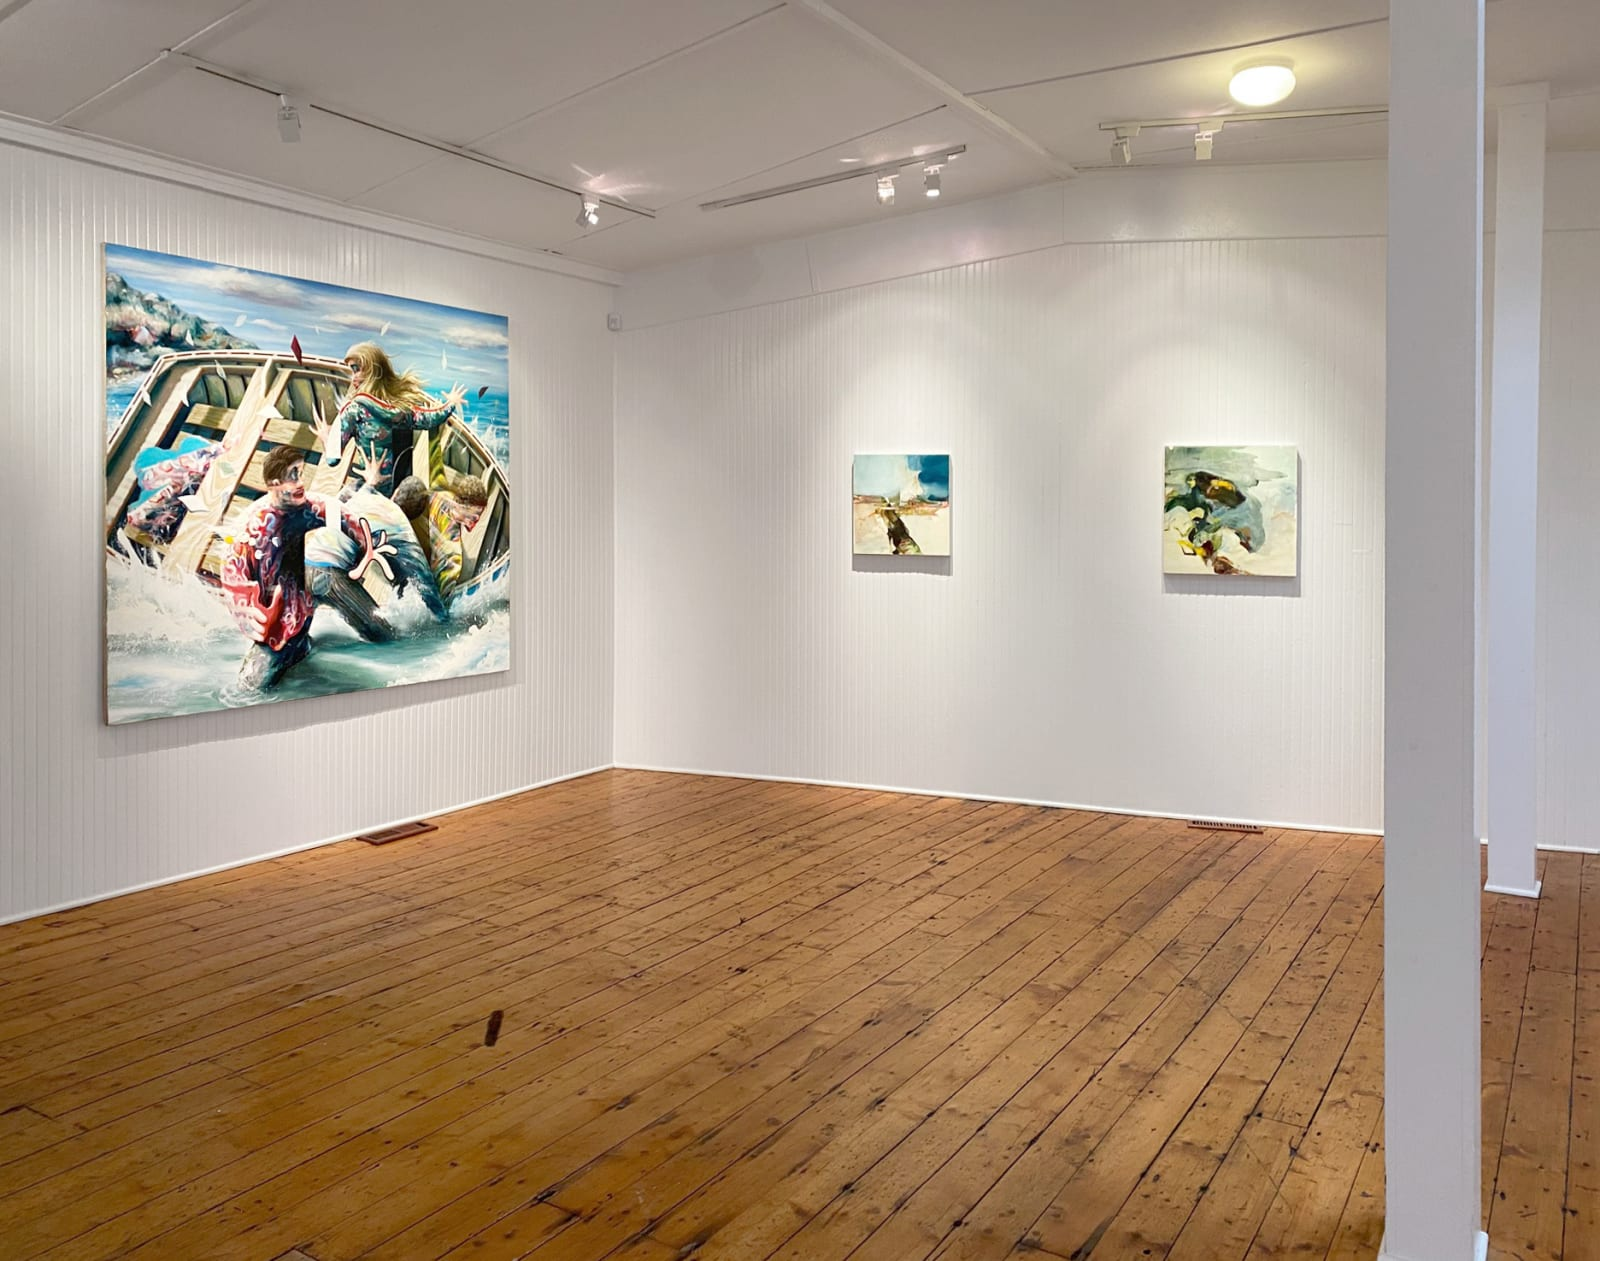 Installation view: A Way of Feeling: Thomas Agrinier, Hollis Heichemer, and Anna Pietrzak